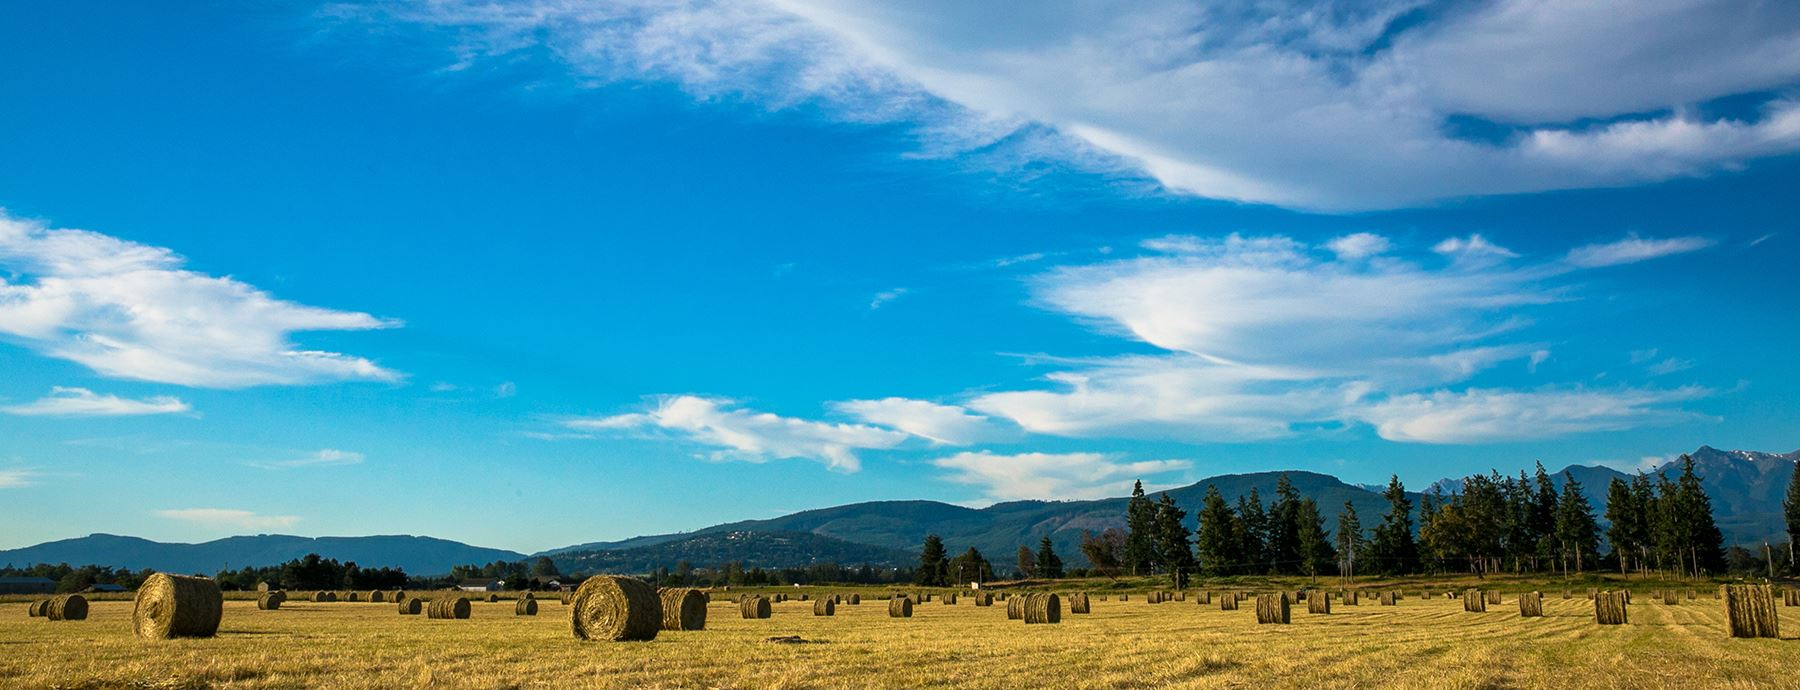 Blue sky with Haybales in a field and mountains in the background